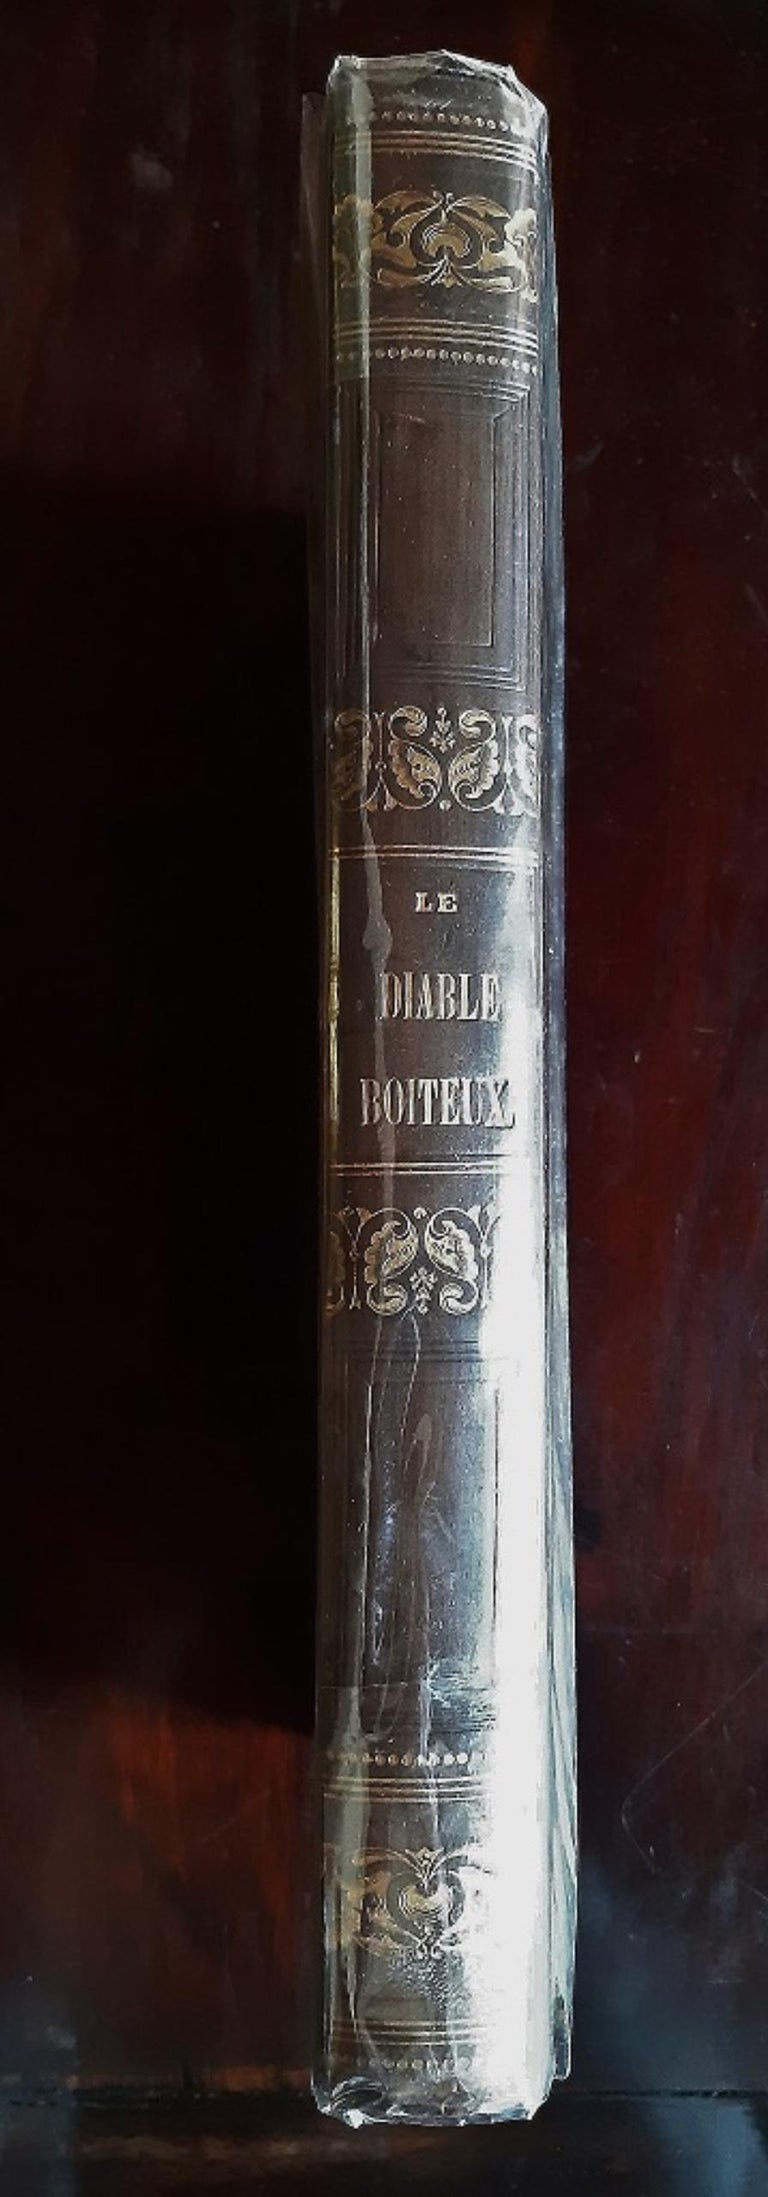 Le Diable Boiteux - Rare Book Illustrated by Tony Johannot - 1840 For Sale 8